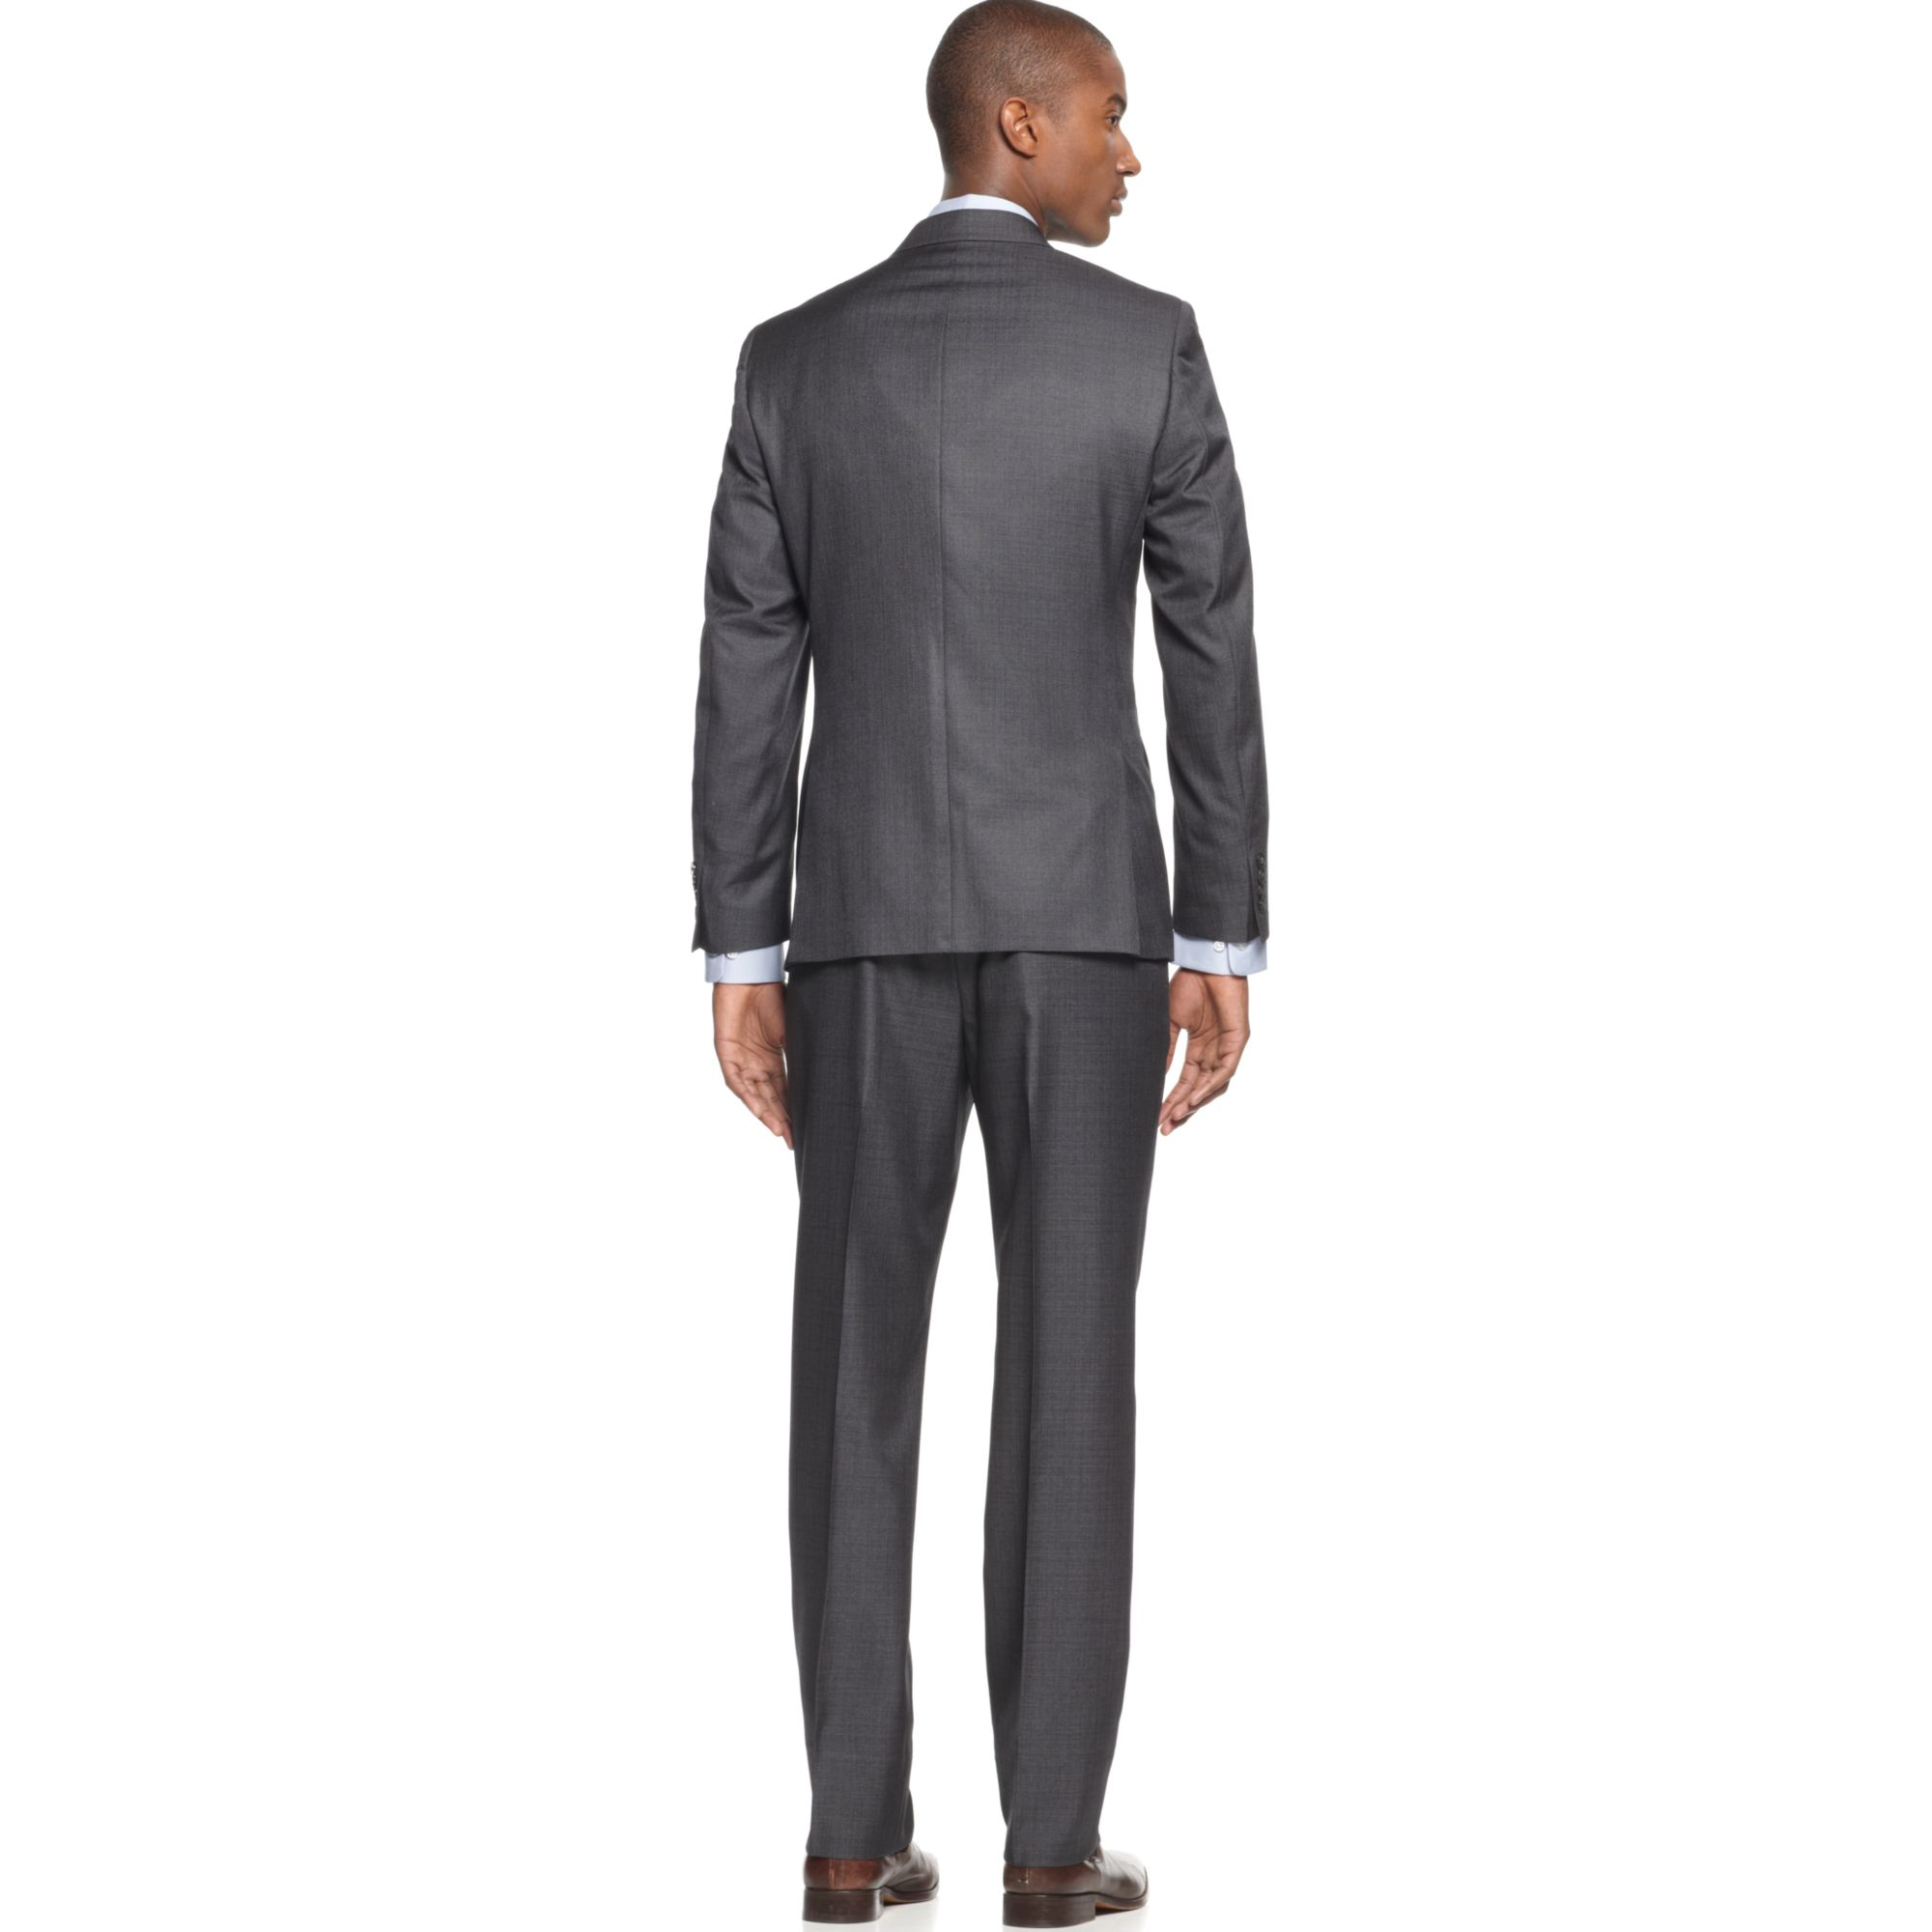 Shop for men's Big & Tall Suits online at truedfil3gz.gq FREE shipping on orders over $